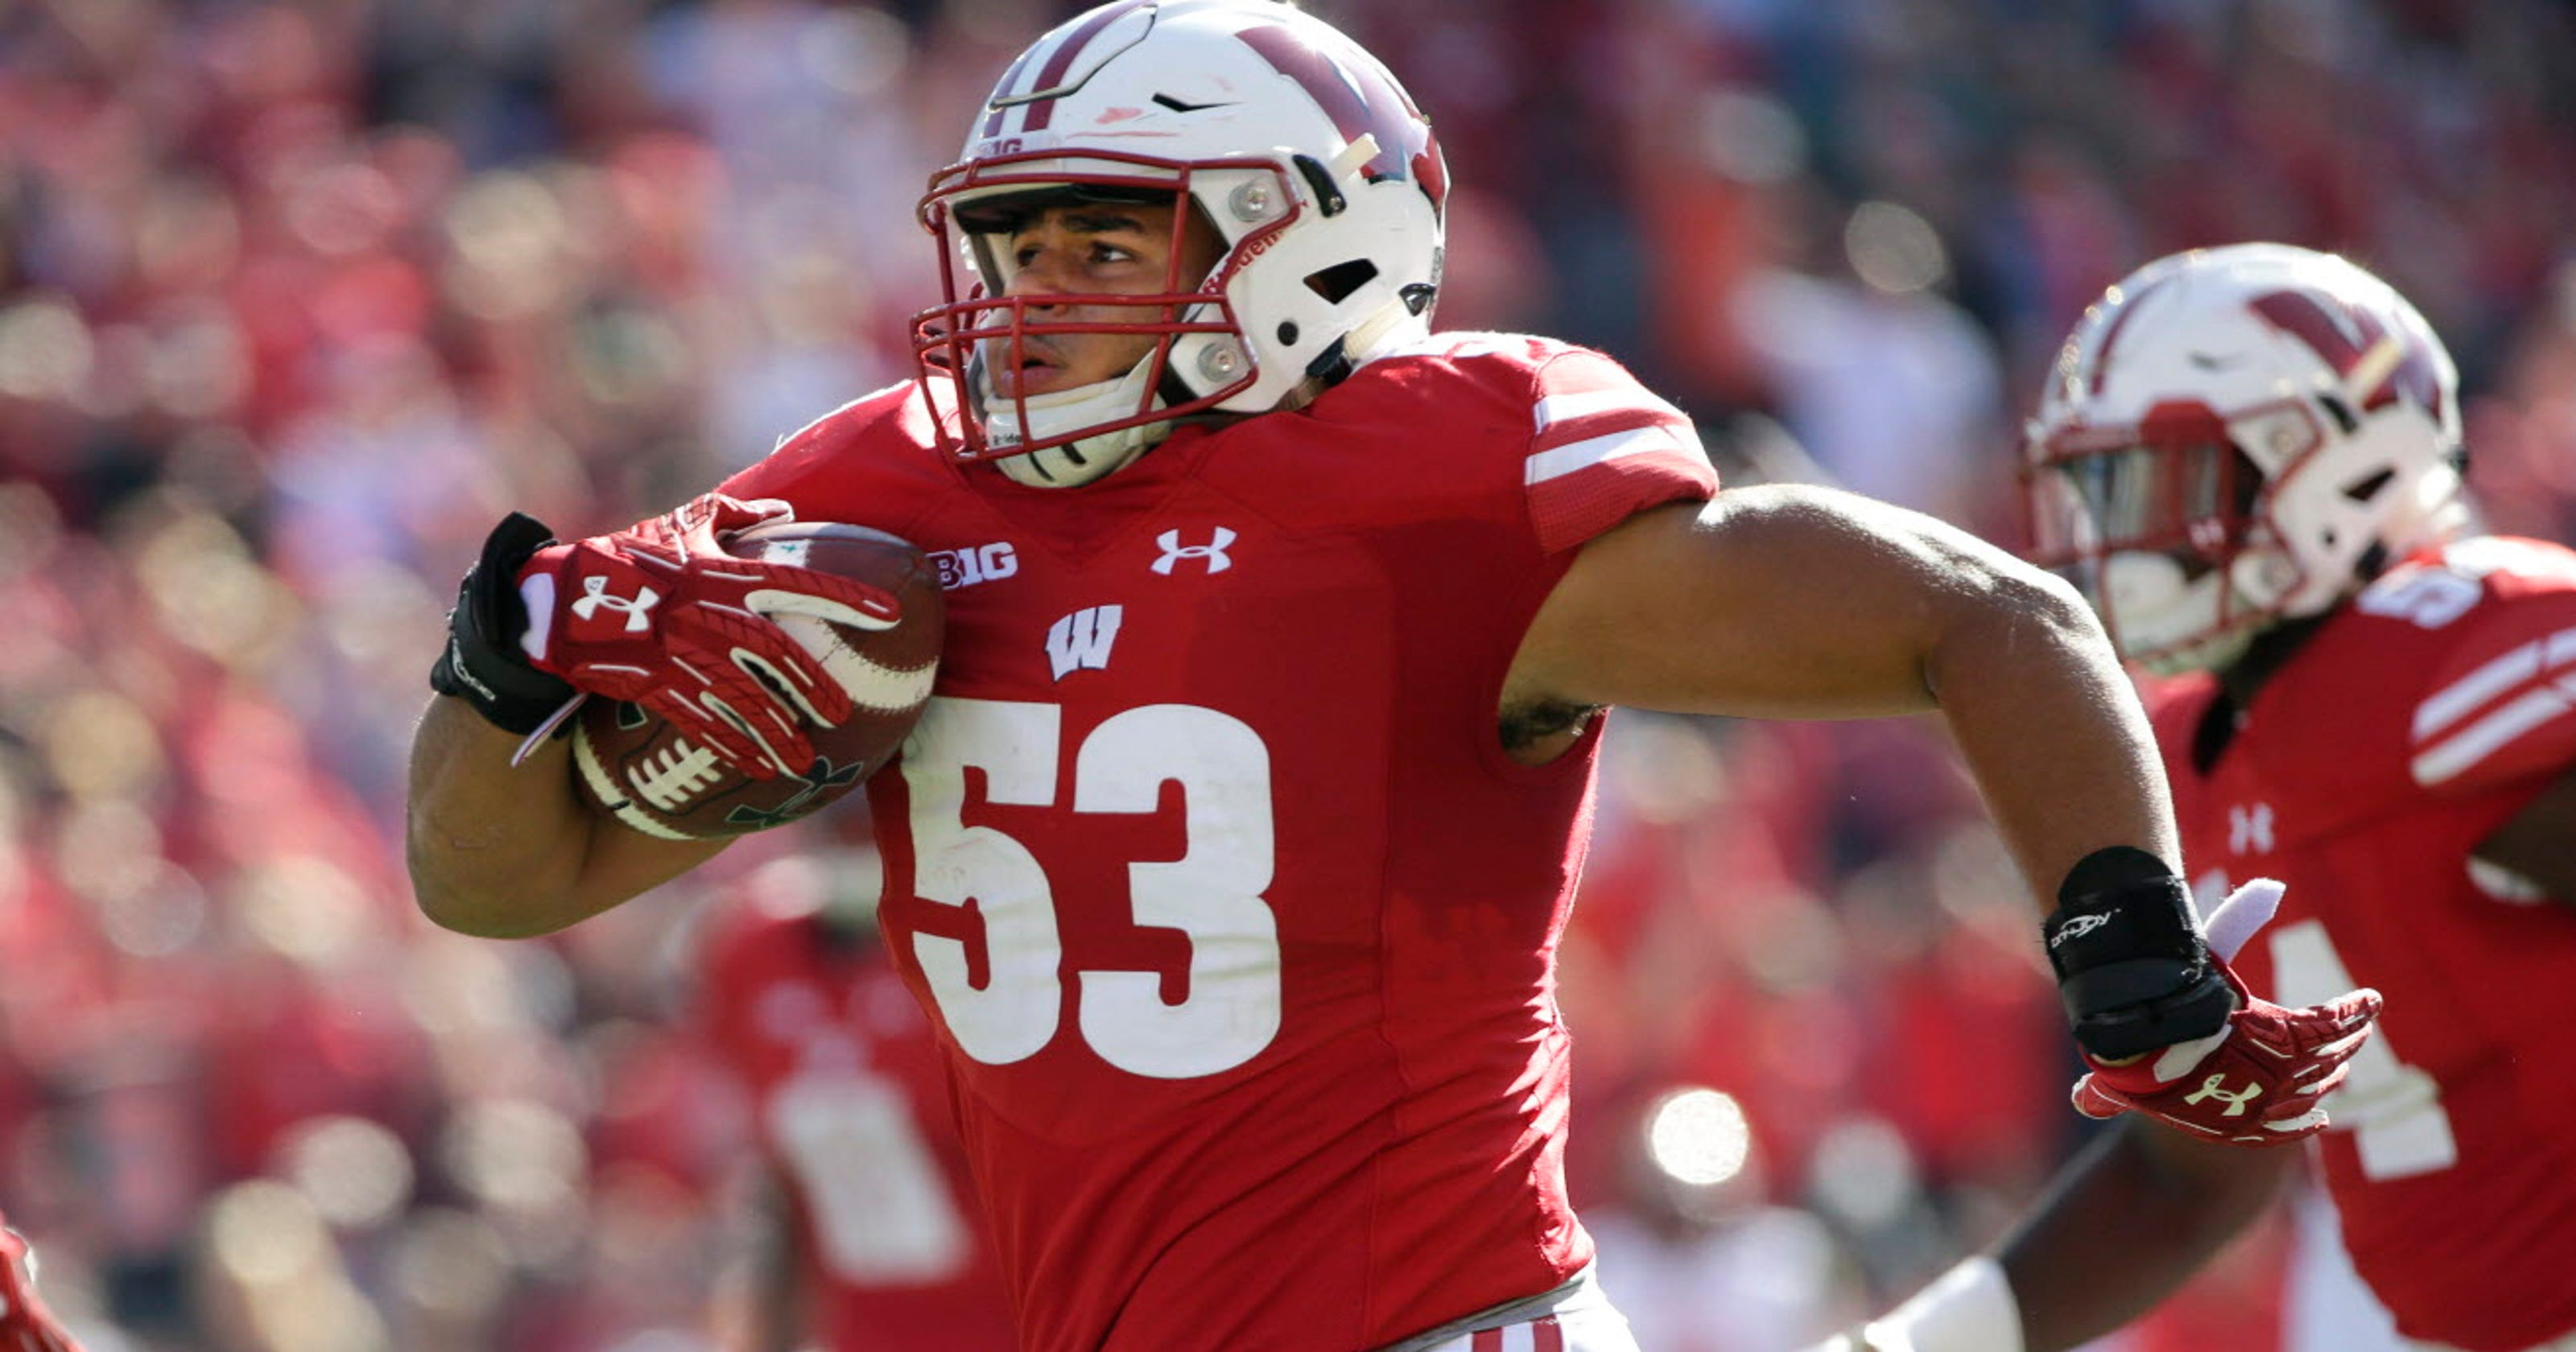 UW Football Preview Heres A Look At Some Interesting Numbers As The Badgers Enter 2018 Season